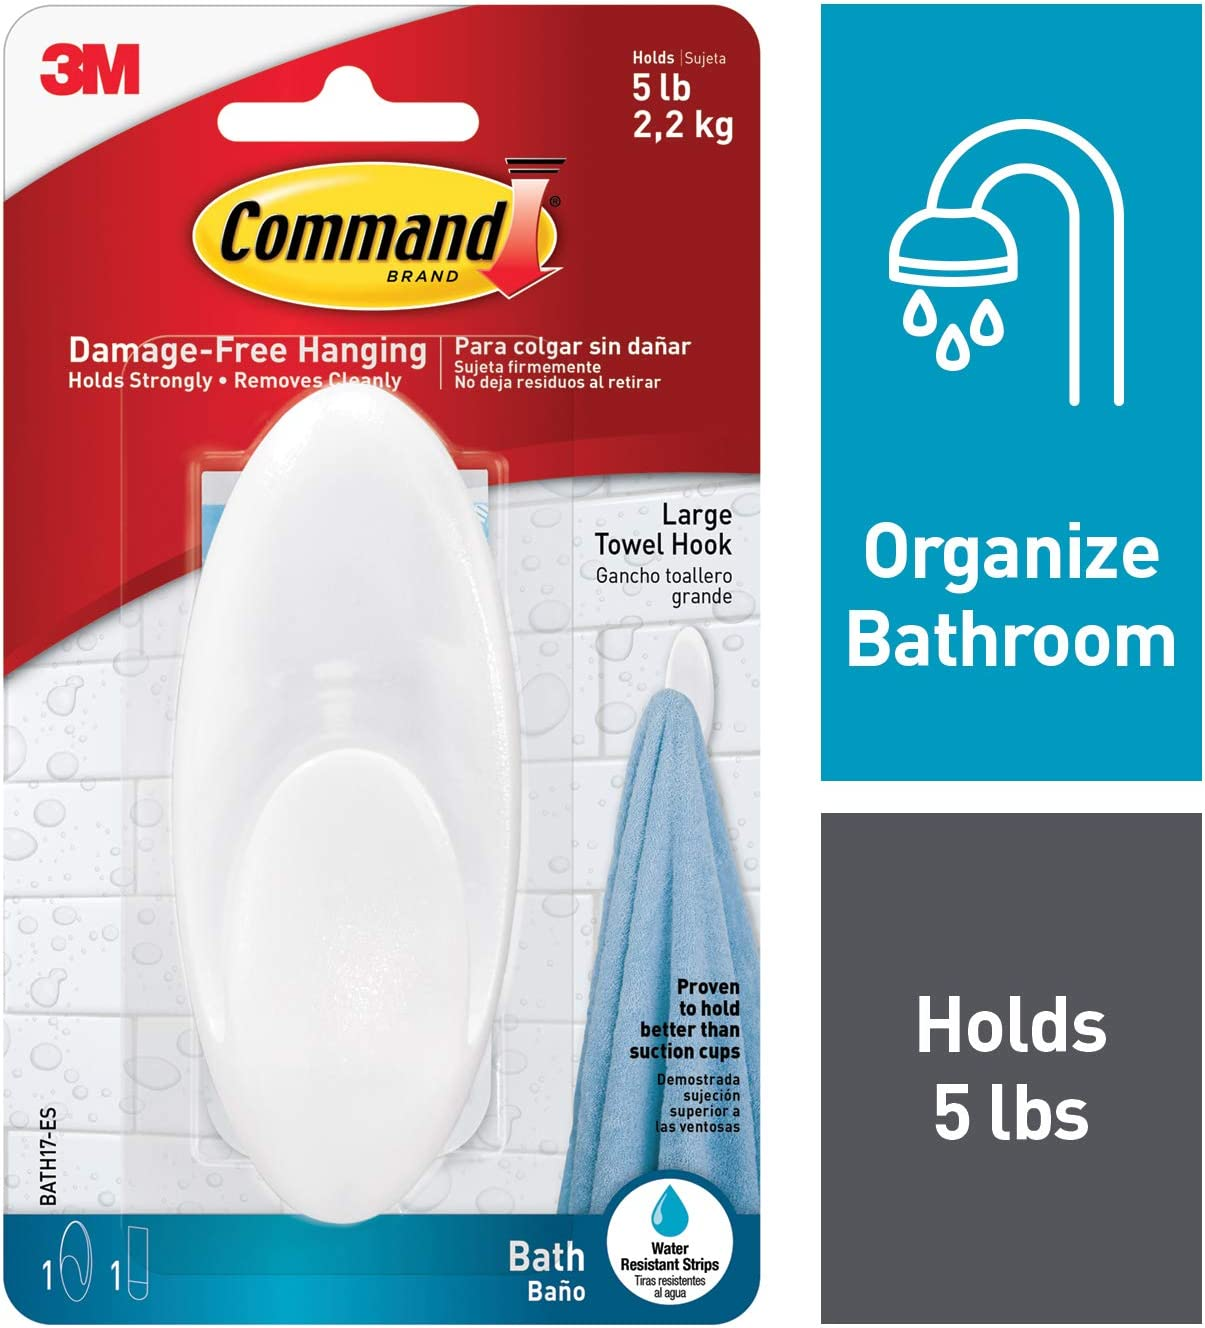 Command BATH17-ES-E 051141958392 Towel, Clear Frosted, 1-Hook, 1-Large Water-Resistant Strip (BATH17-ES), 1